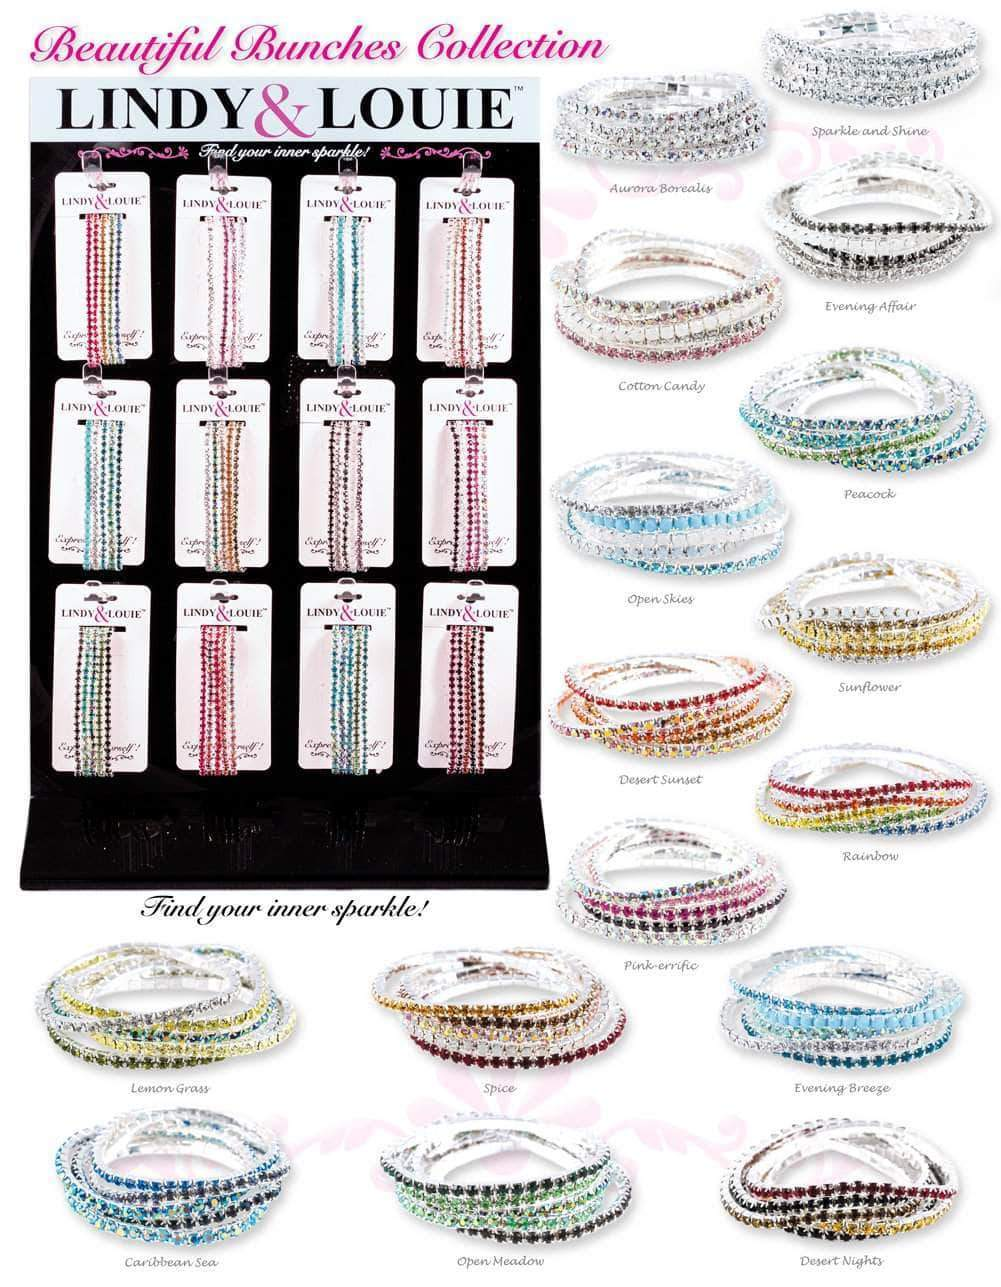 Trendy Jewelry #91106 -Lindy & Louie Buncher Bracelets Assortment with Display